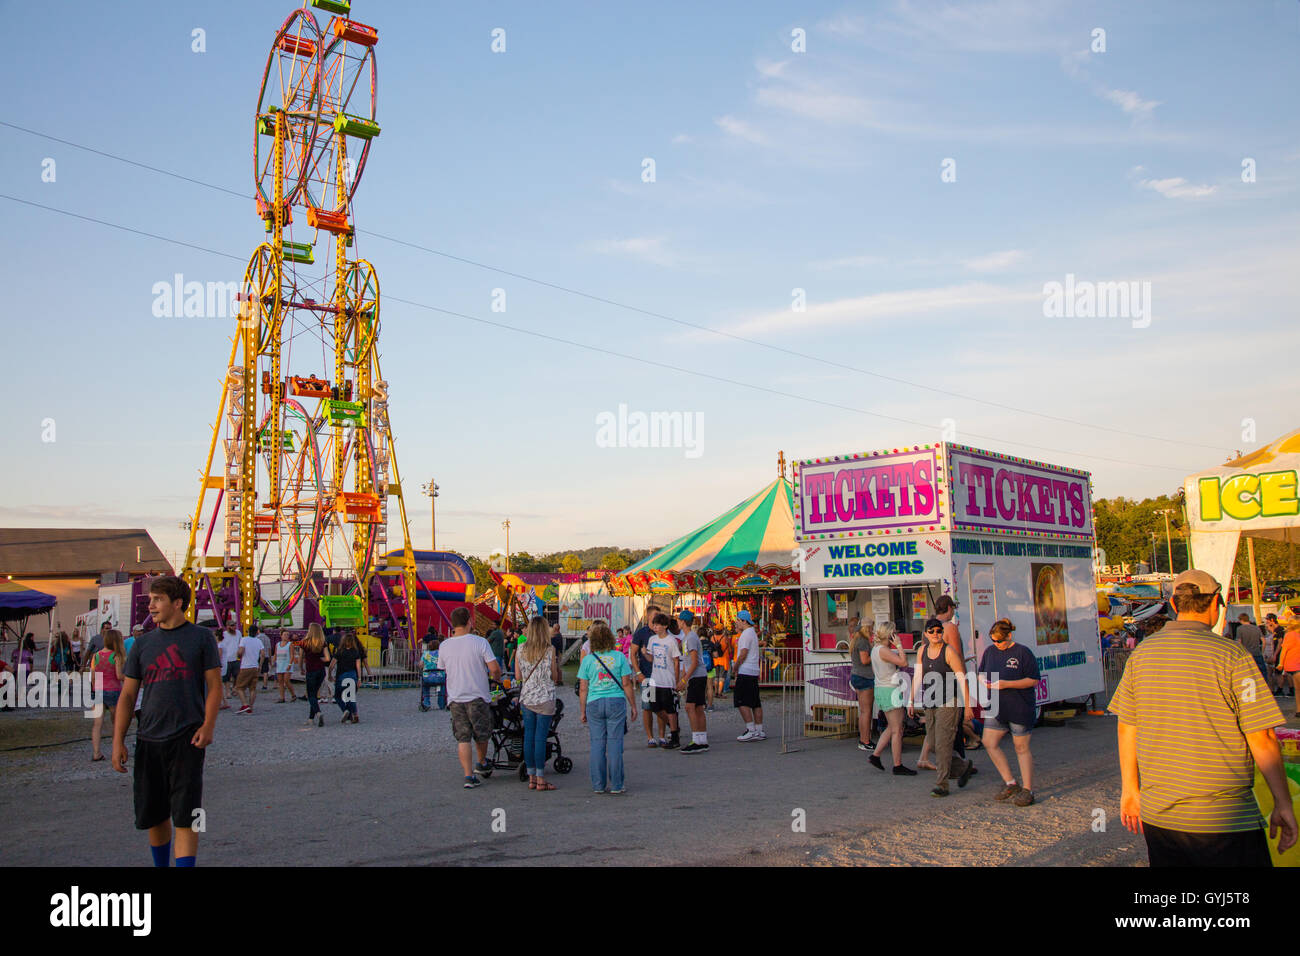 CLINTON, TN - JULY 2016: Scene from the last day of the Anderson County Fair on July 16, 2016 in Clinton, Tennessee. - Stock Image